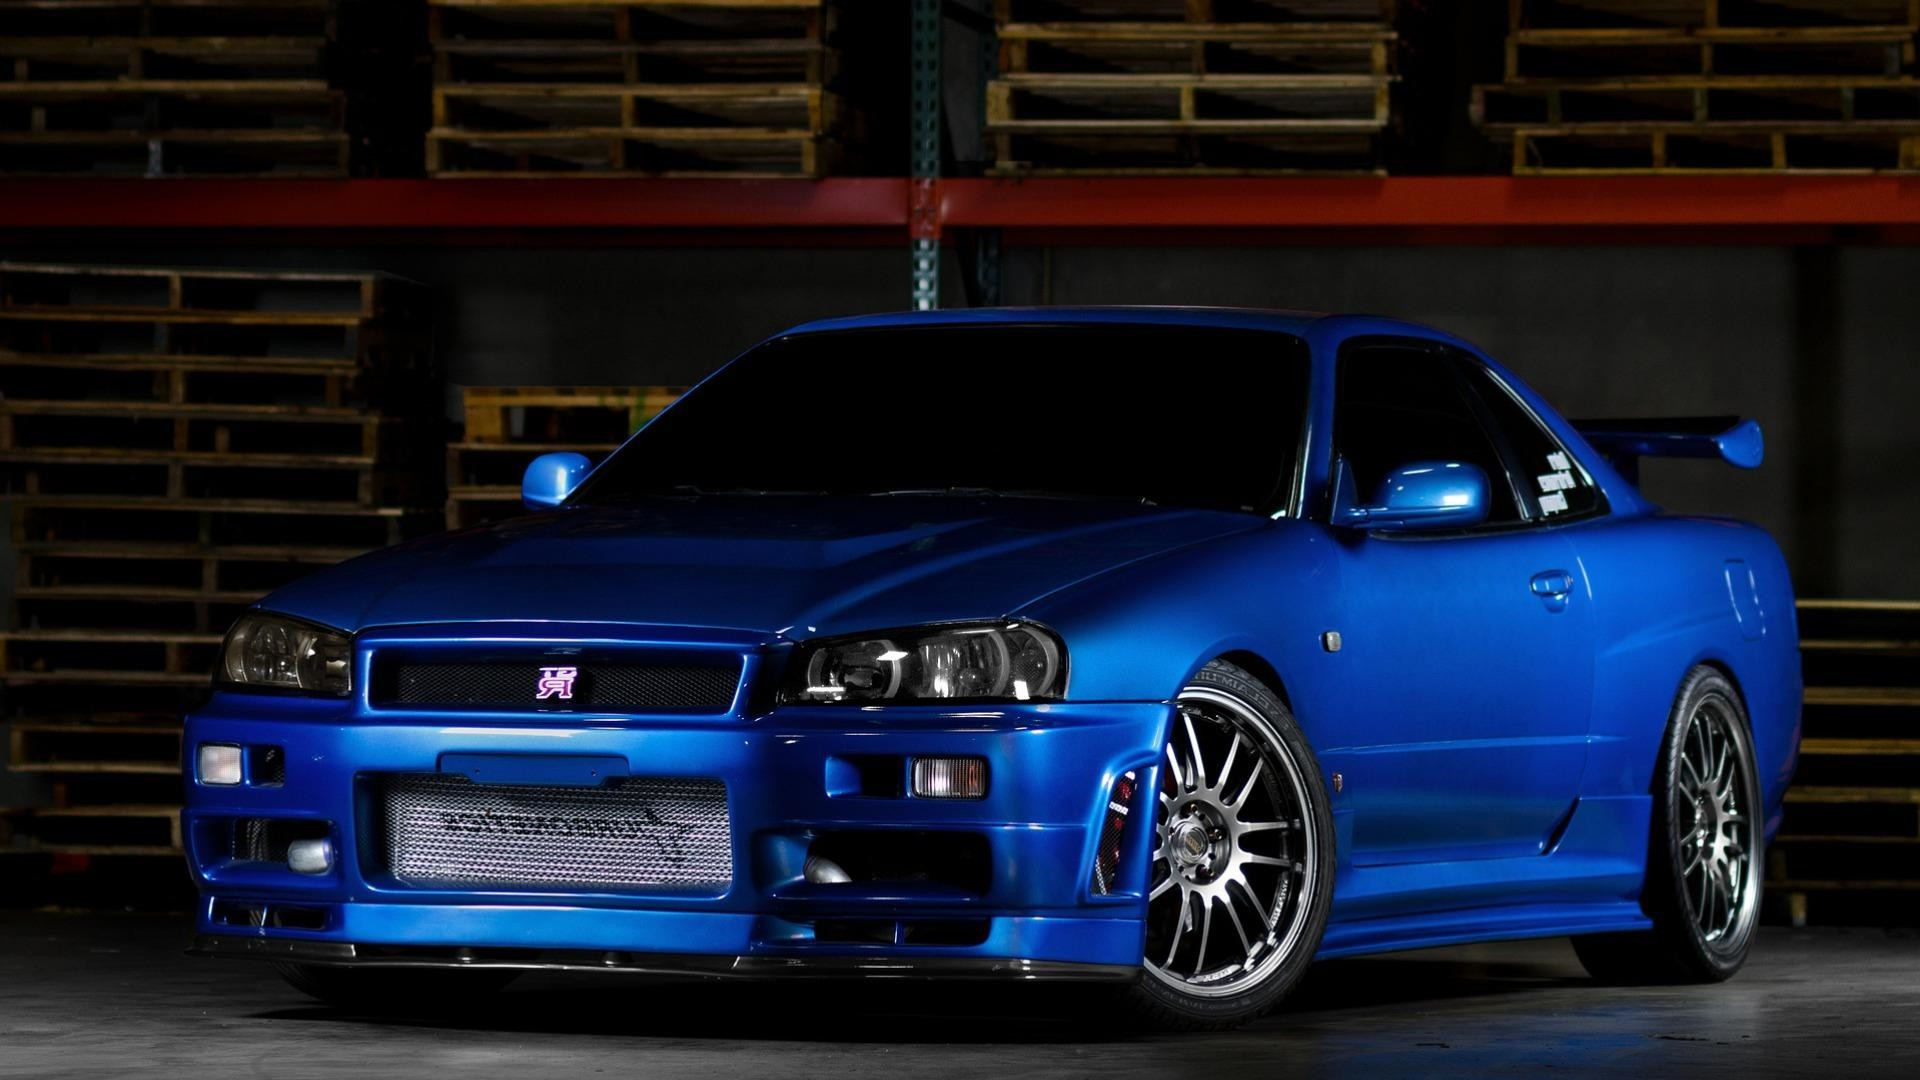 Nissan Skyline Gtr R34 Desktop Hd Wallpapers